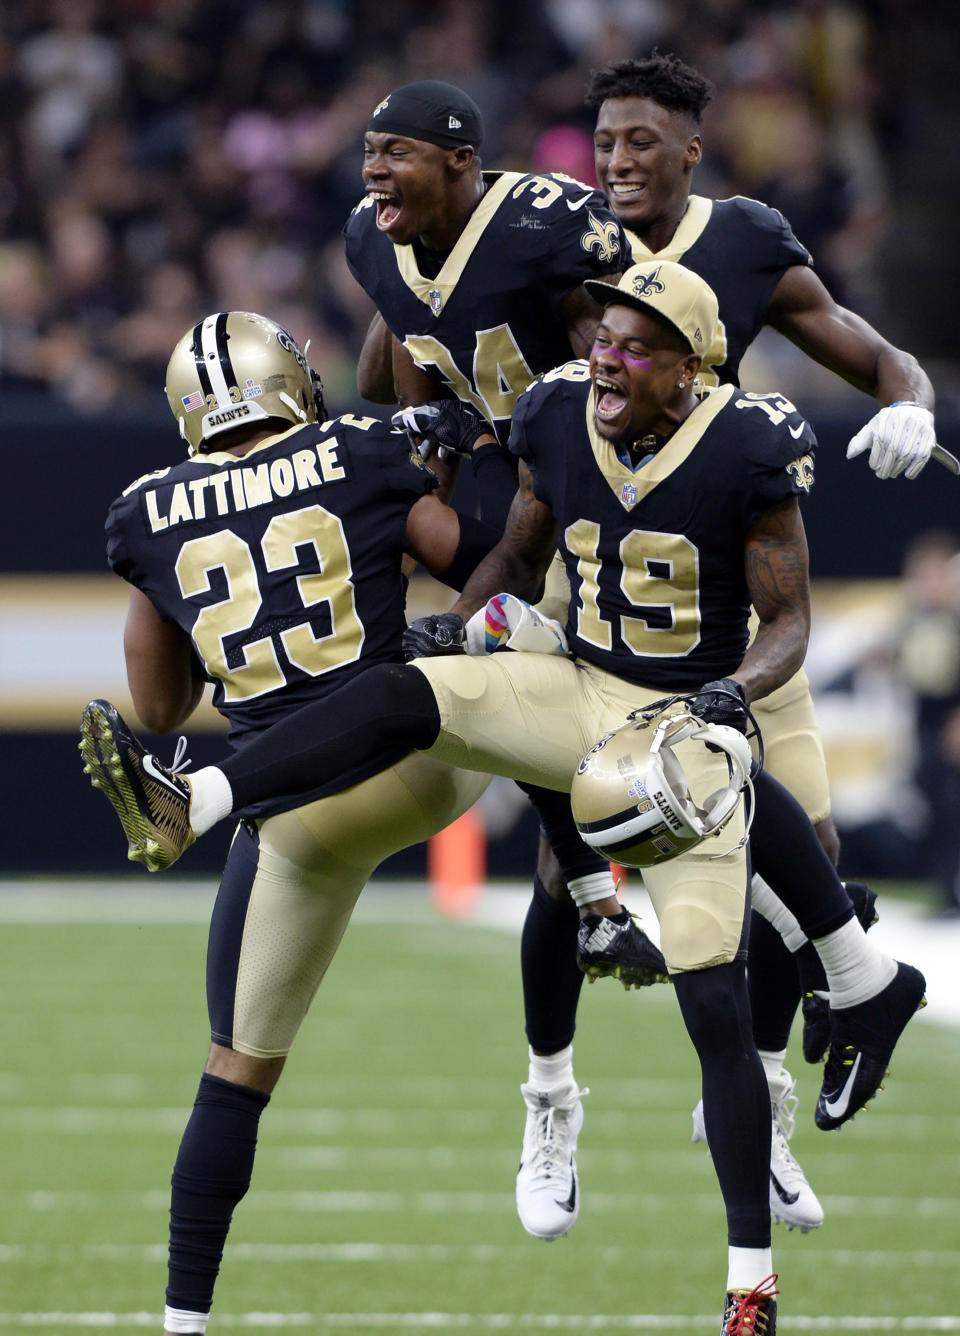 <p>New Orleans Saints cornerback Marshon Lattimore (23) celebrates his interception and touchdown with wide receiver Ted Ginn (19) and defensive back Justin Hardee (34) in the second half of an NFL football game against the Detroit Lions in New Orleans, Sunday, Oct. 15, 2017. (AP Photo/Bill Feig) </p>